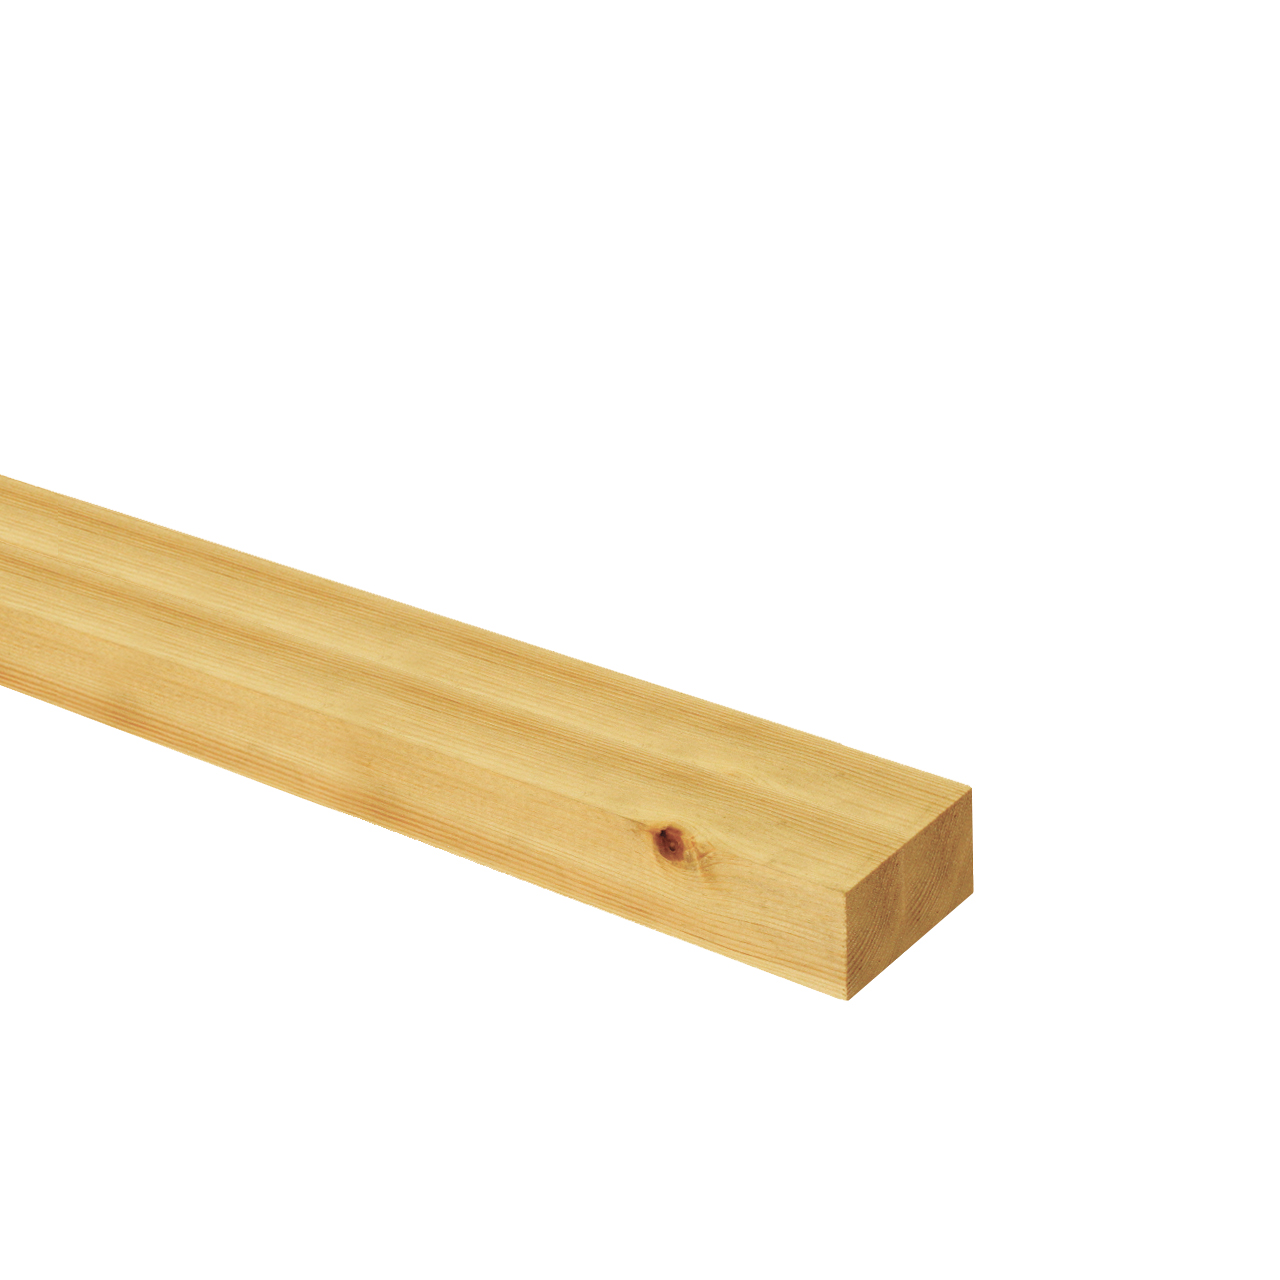 38mm x 75mm PSE Softwood (33mm x 70mm Finished Size) image 0